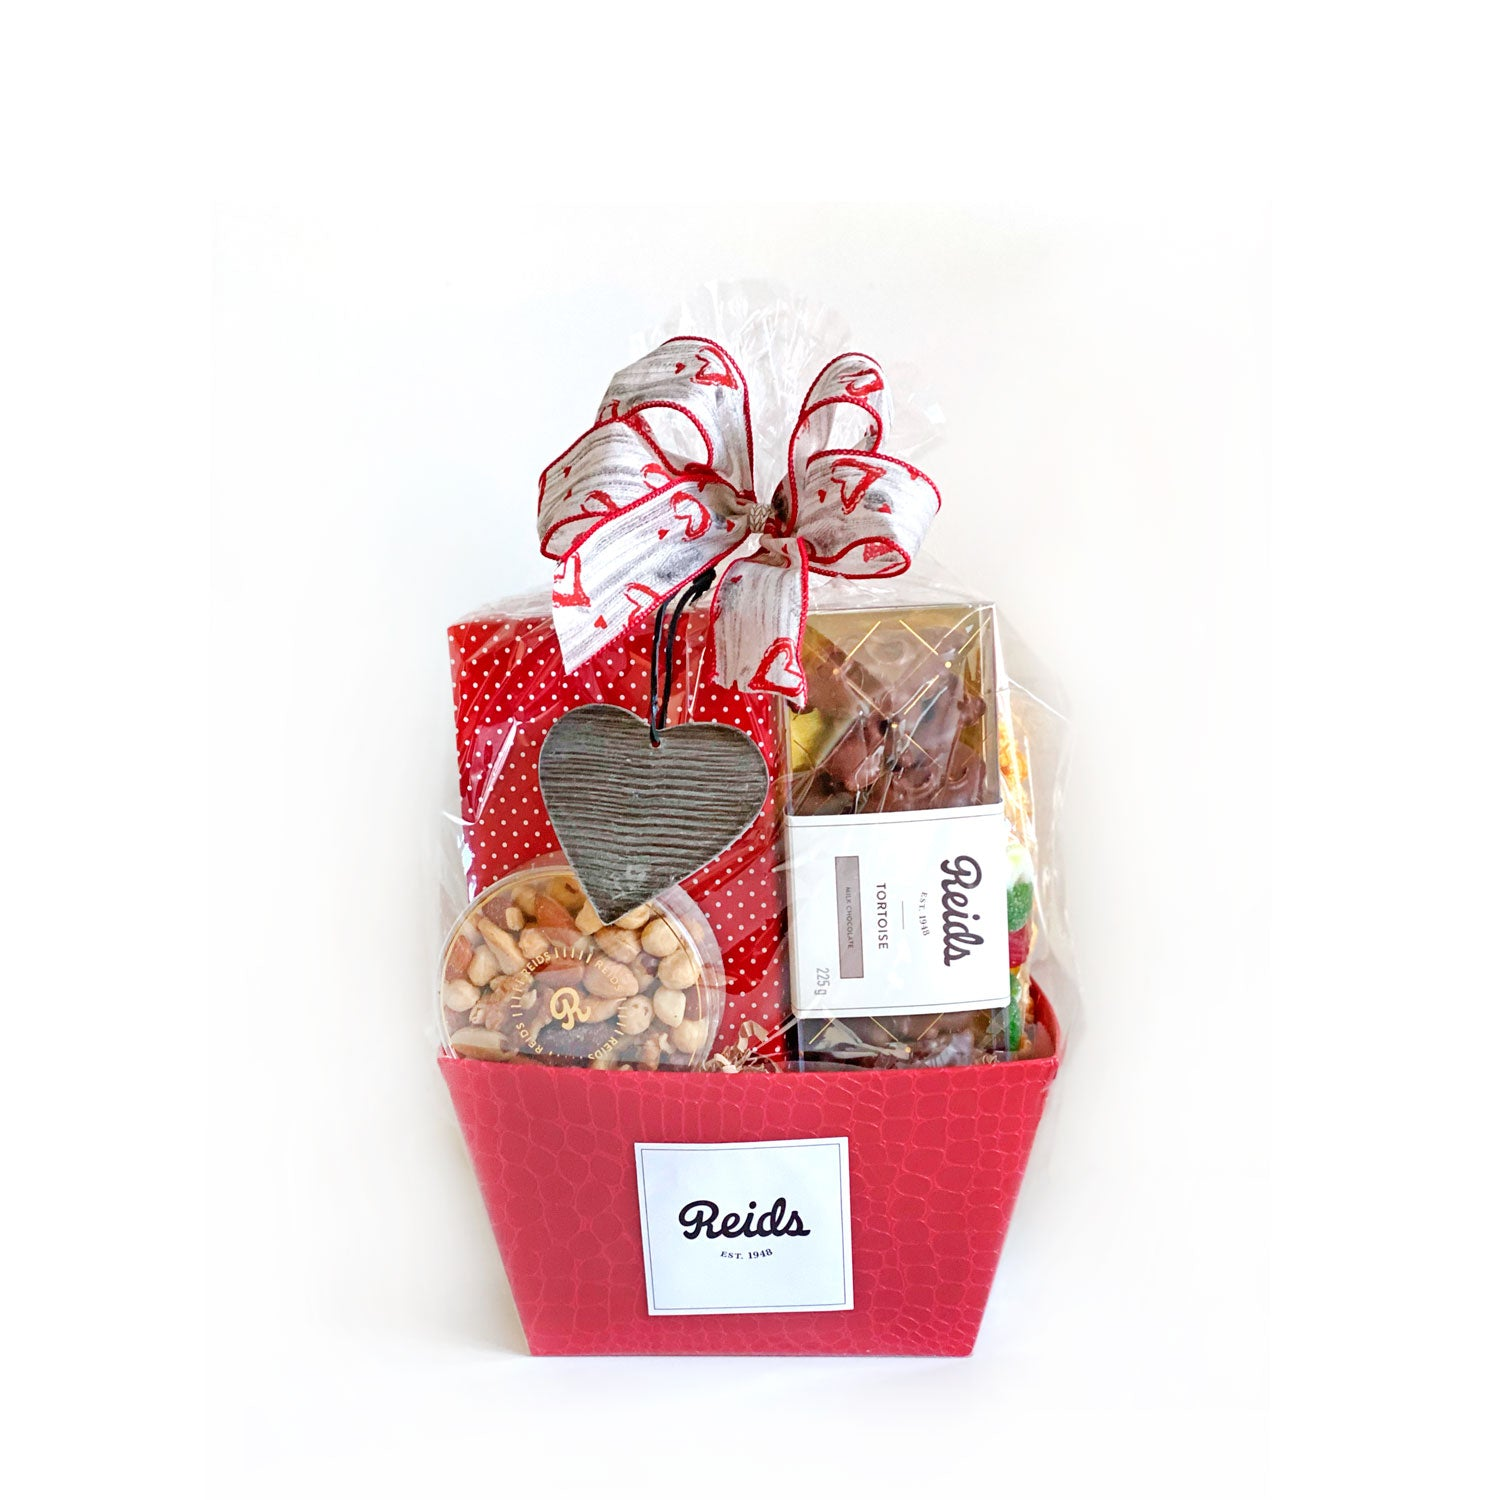 A basket filled with 1/2 lb assorted chocolates, 1/2 lb Tortoises, 1/4 lb fancy mixed nuts, 1/2 lb candy bag, 1 bag of Barrie's Kettle Chips, and 1 bag of caramel corn.